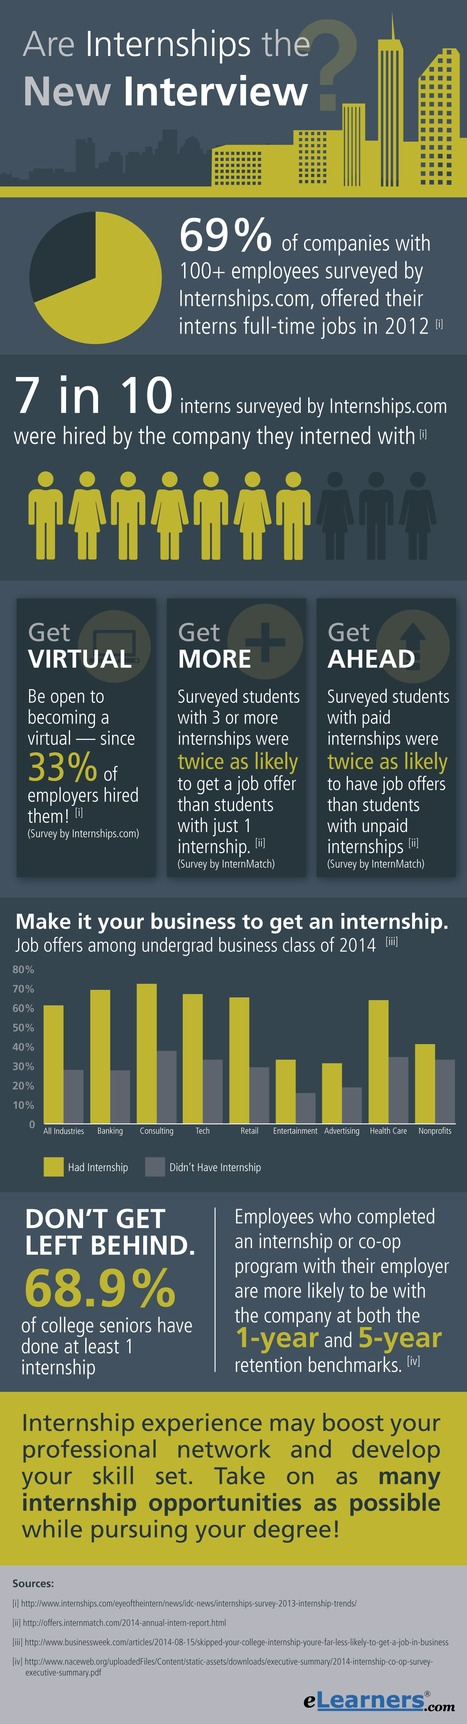 Are Internships the New Interview? | Job Interviewing advice | Scoop.it